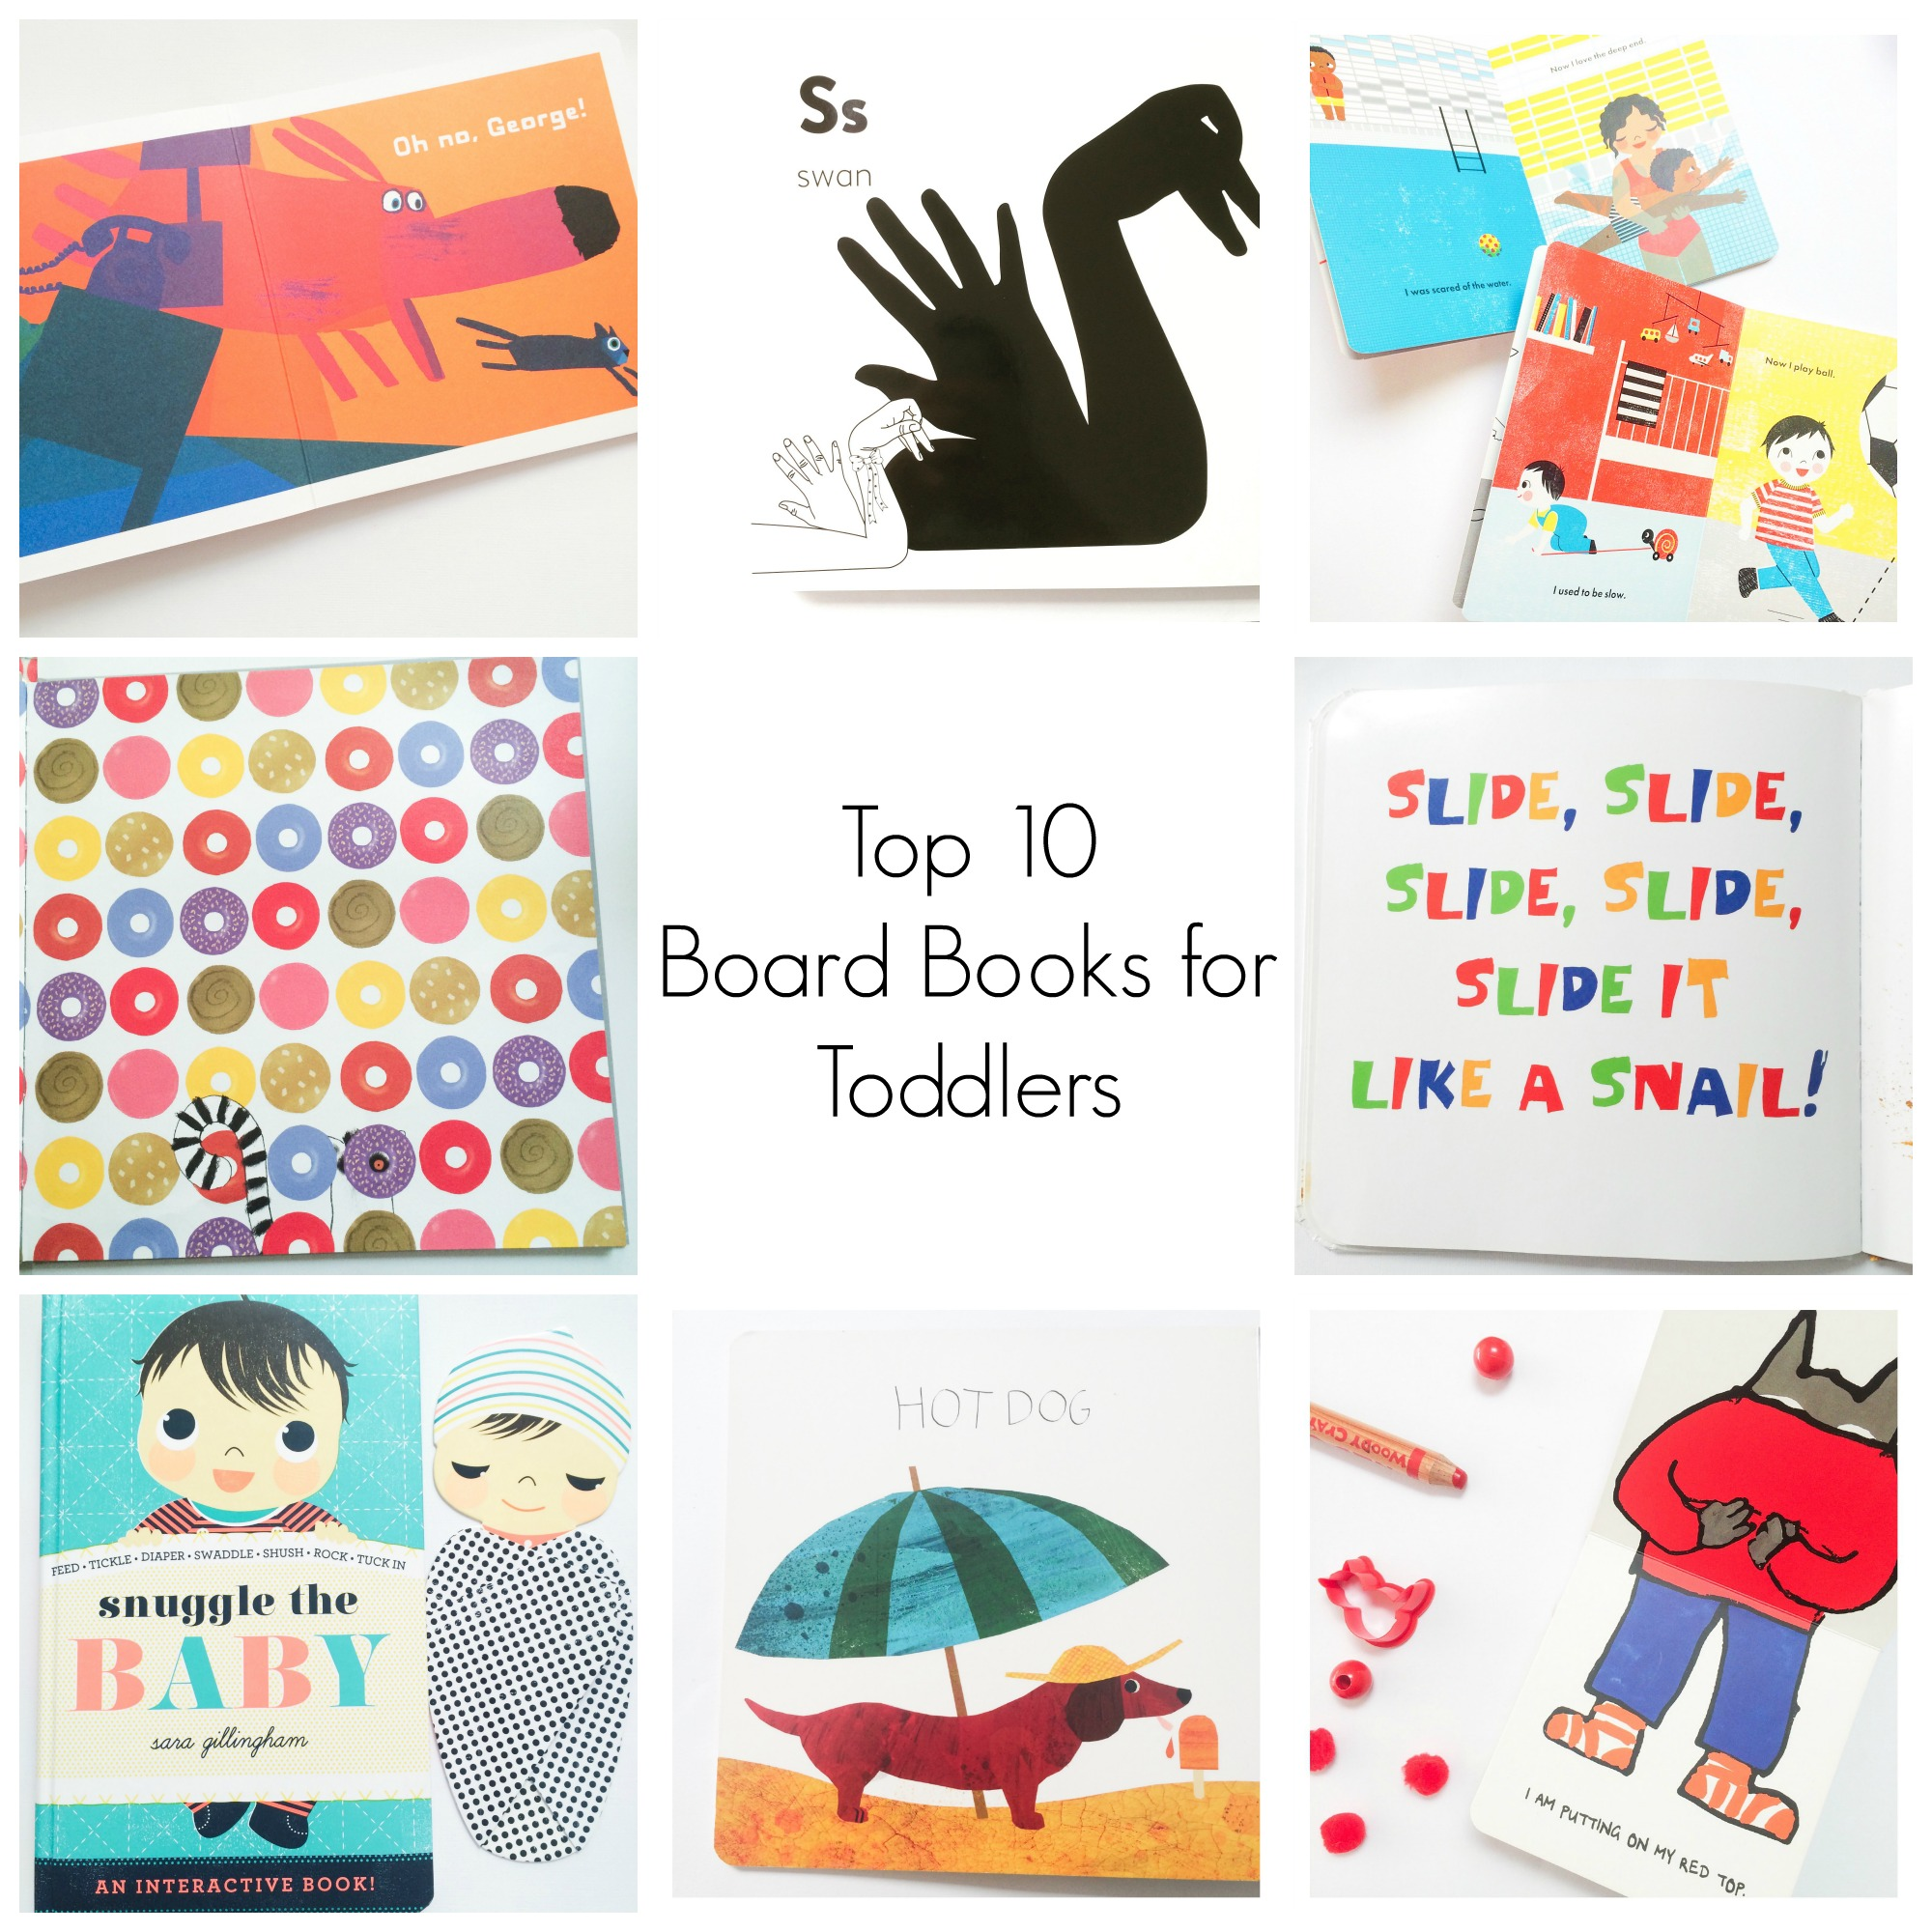 Top 10 Board Books for Toddlers